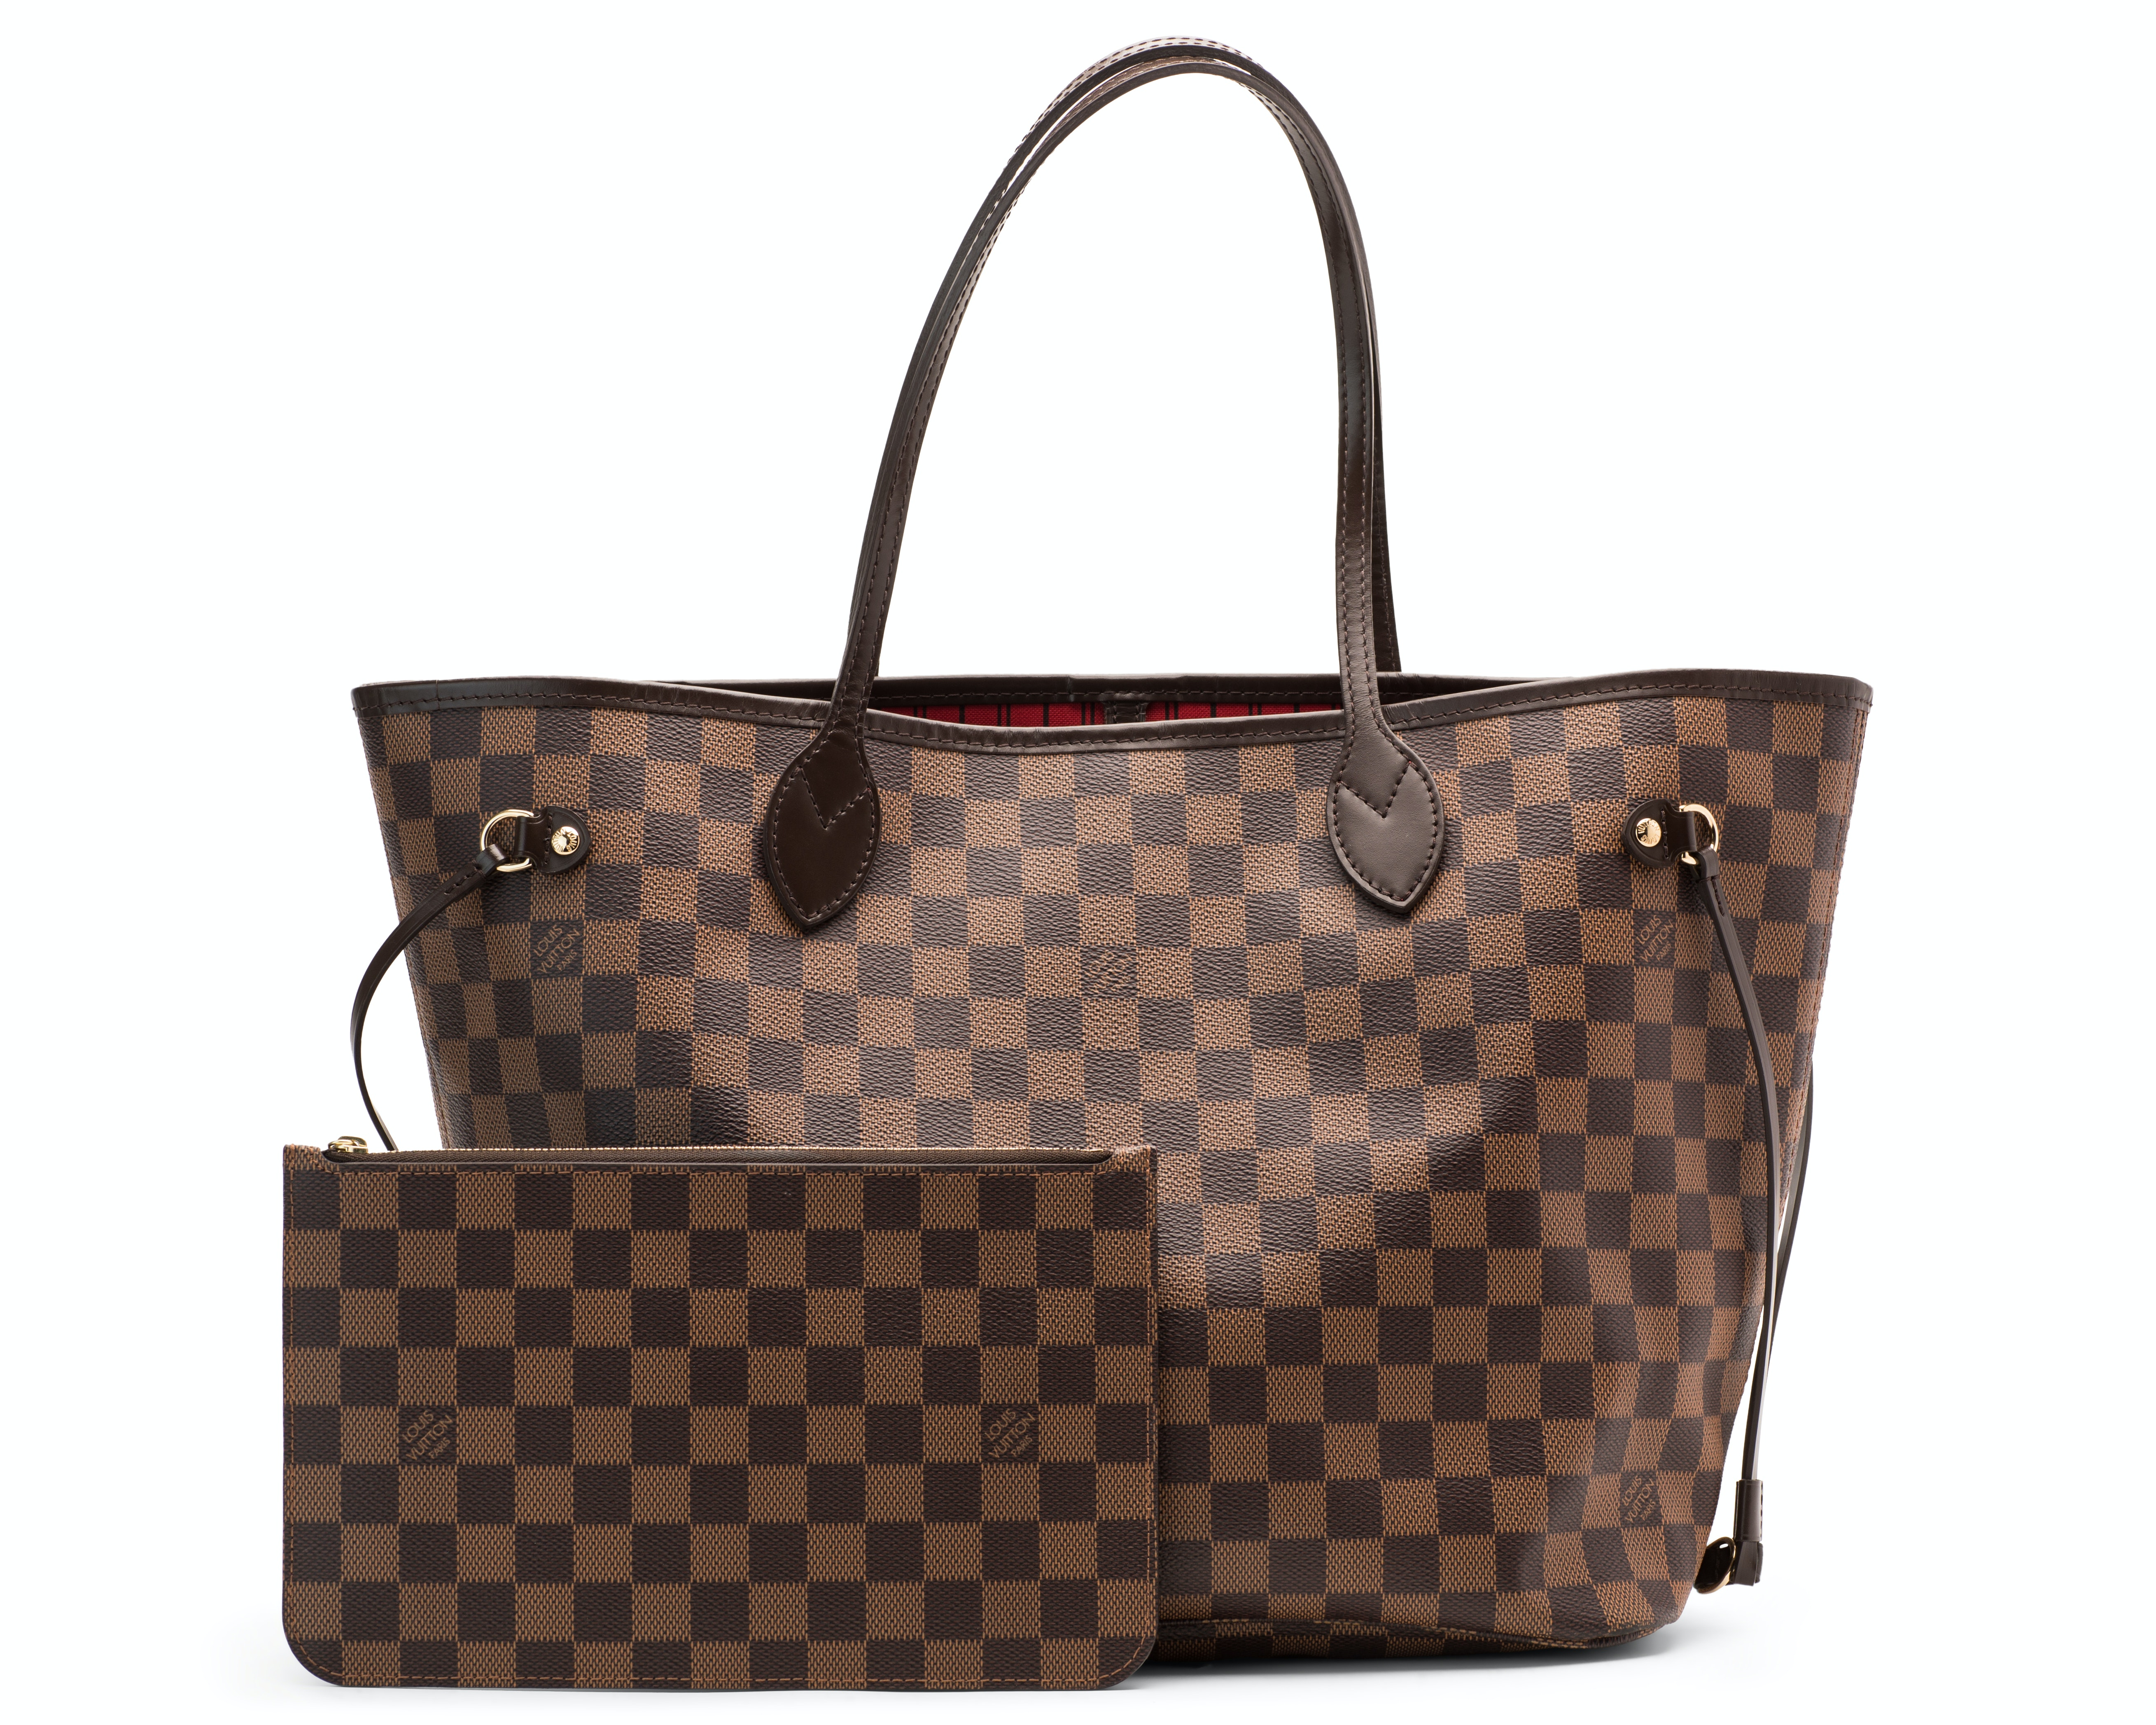 Louis Vuitton Neverfull Nm Damier Ebene MM (With Pouch) Brown